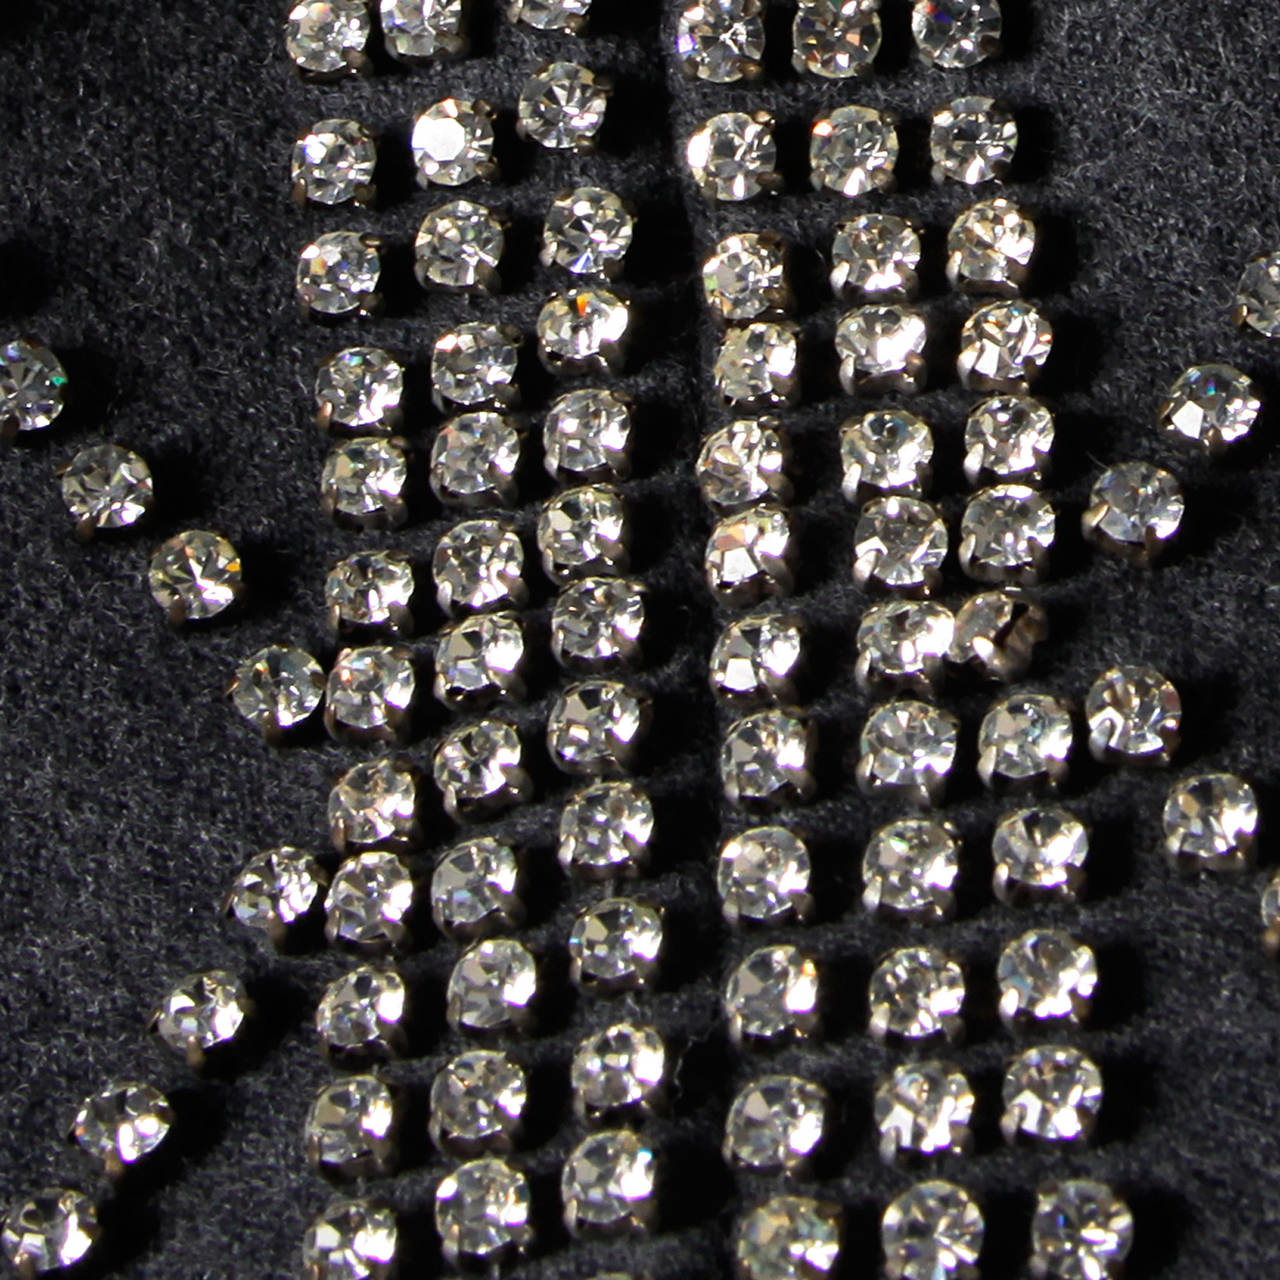 Malcolm Starr Vintage 1960s Gray Wool Rhinestone Embellished Maxi Dress For Sale 1